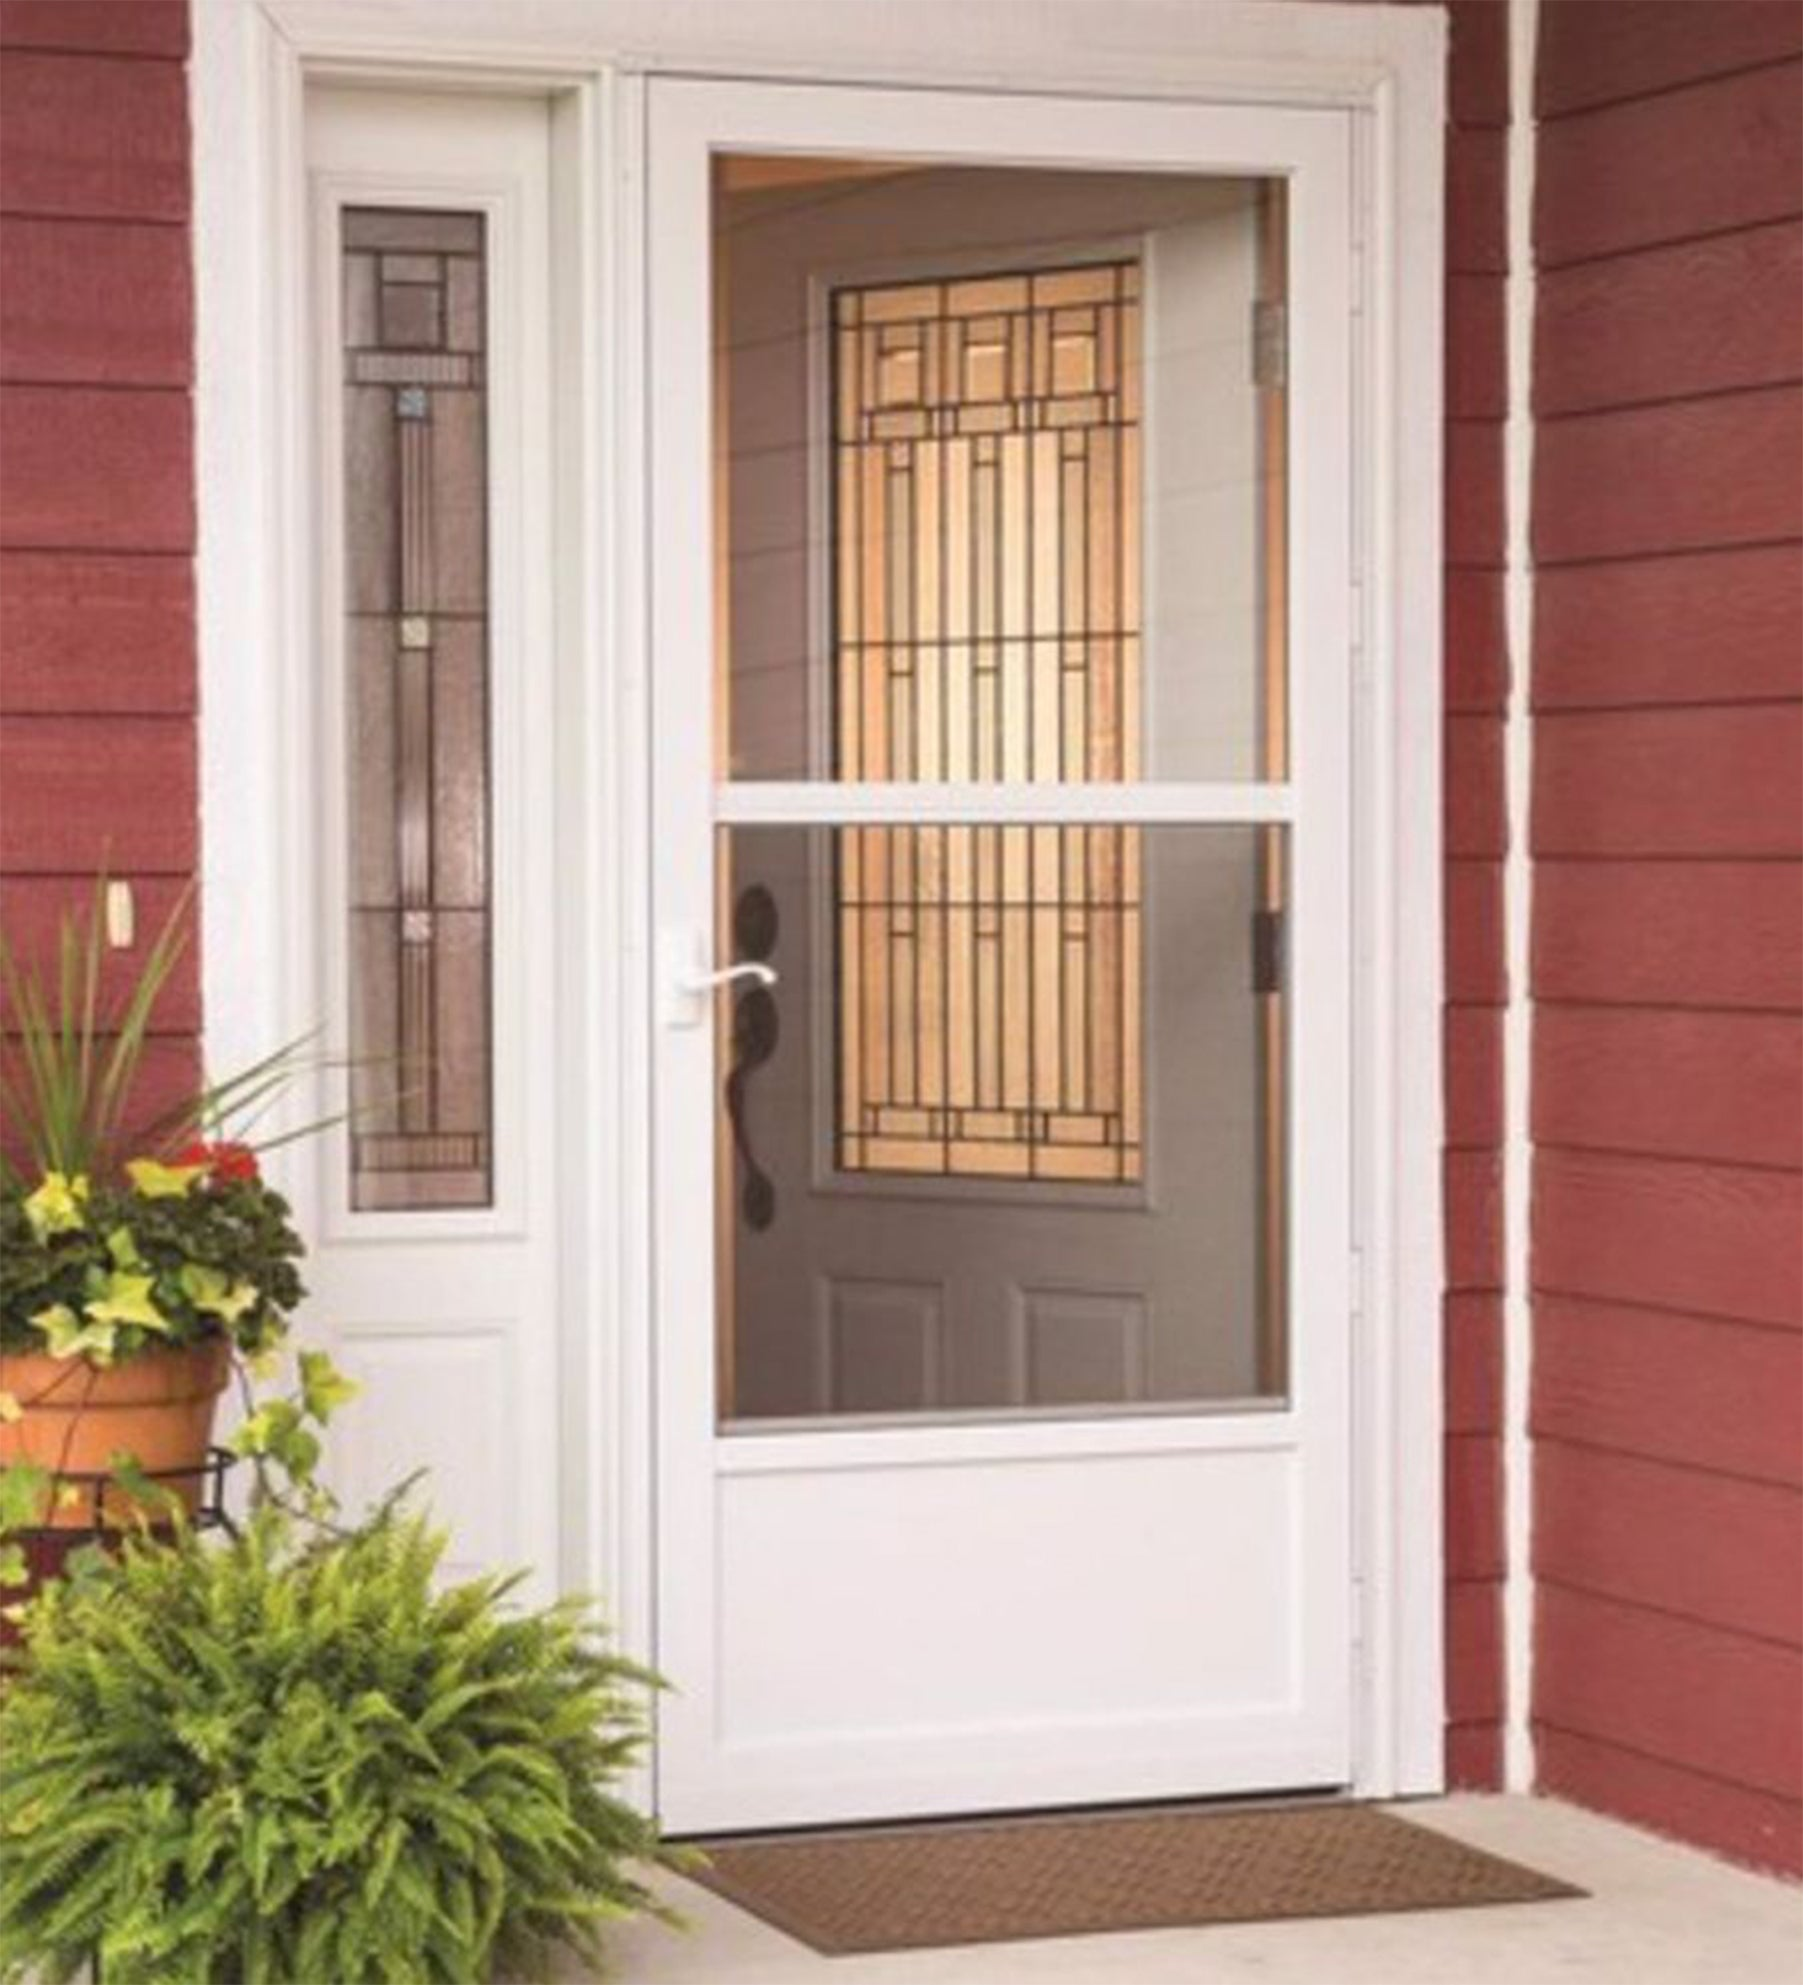 INSTALLED Larson Life Core Reversa Screen Storm Door w/ Hardware STARTING $499.99